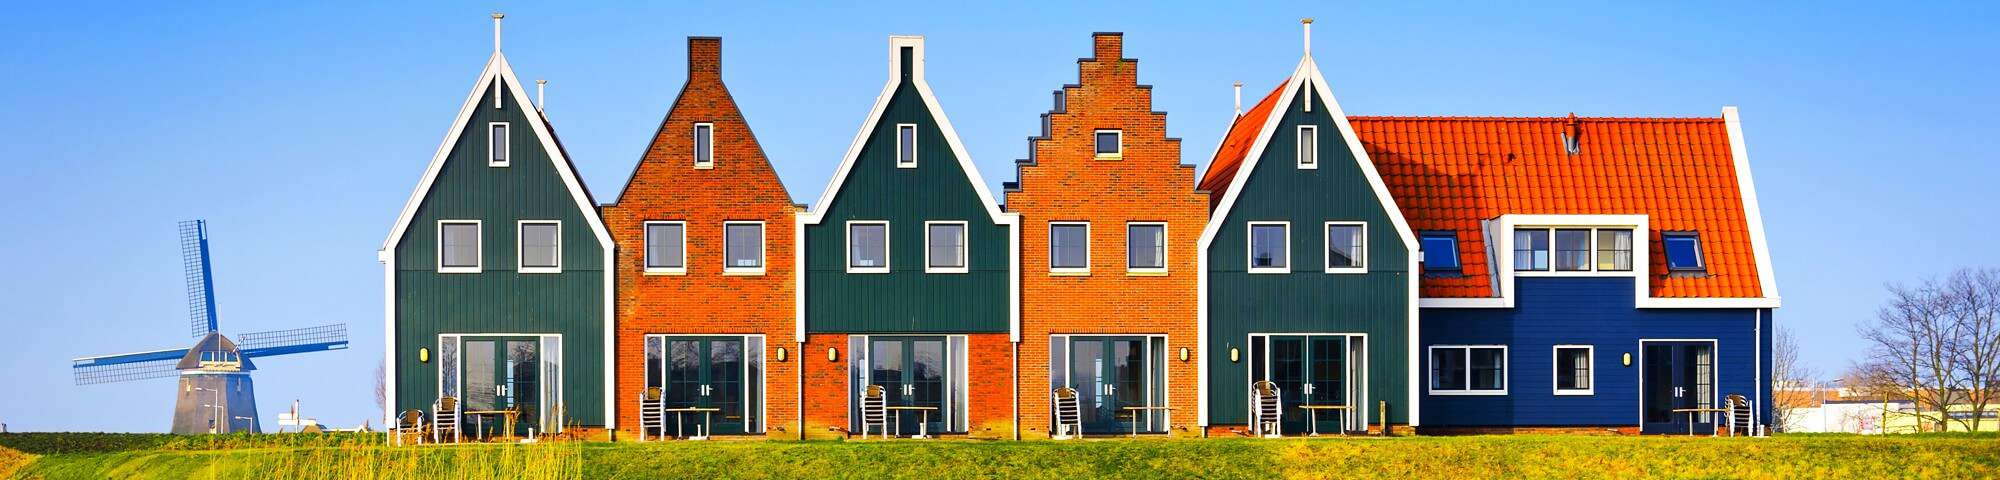 Holiday home in the Netherlands, bookable online now | Belvilla